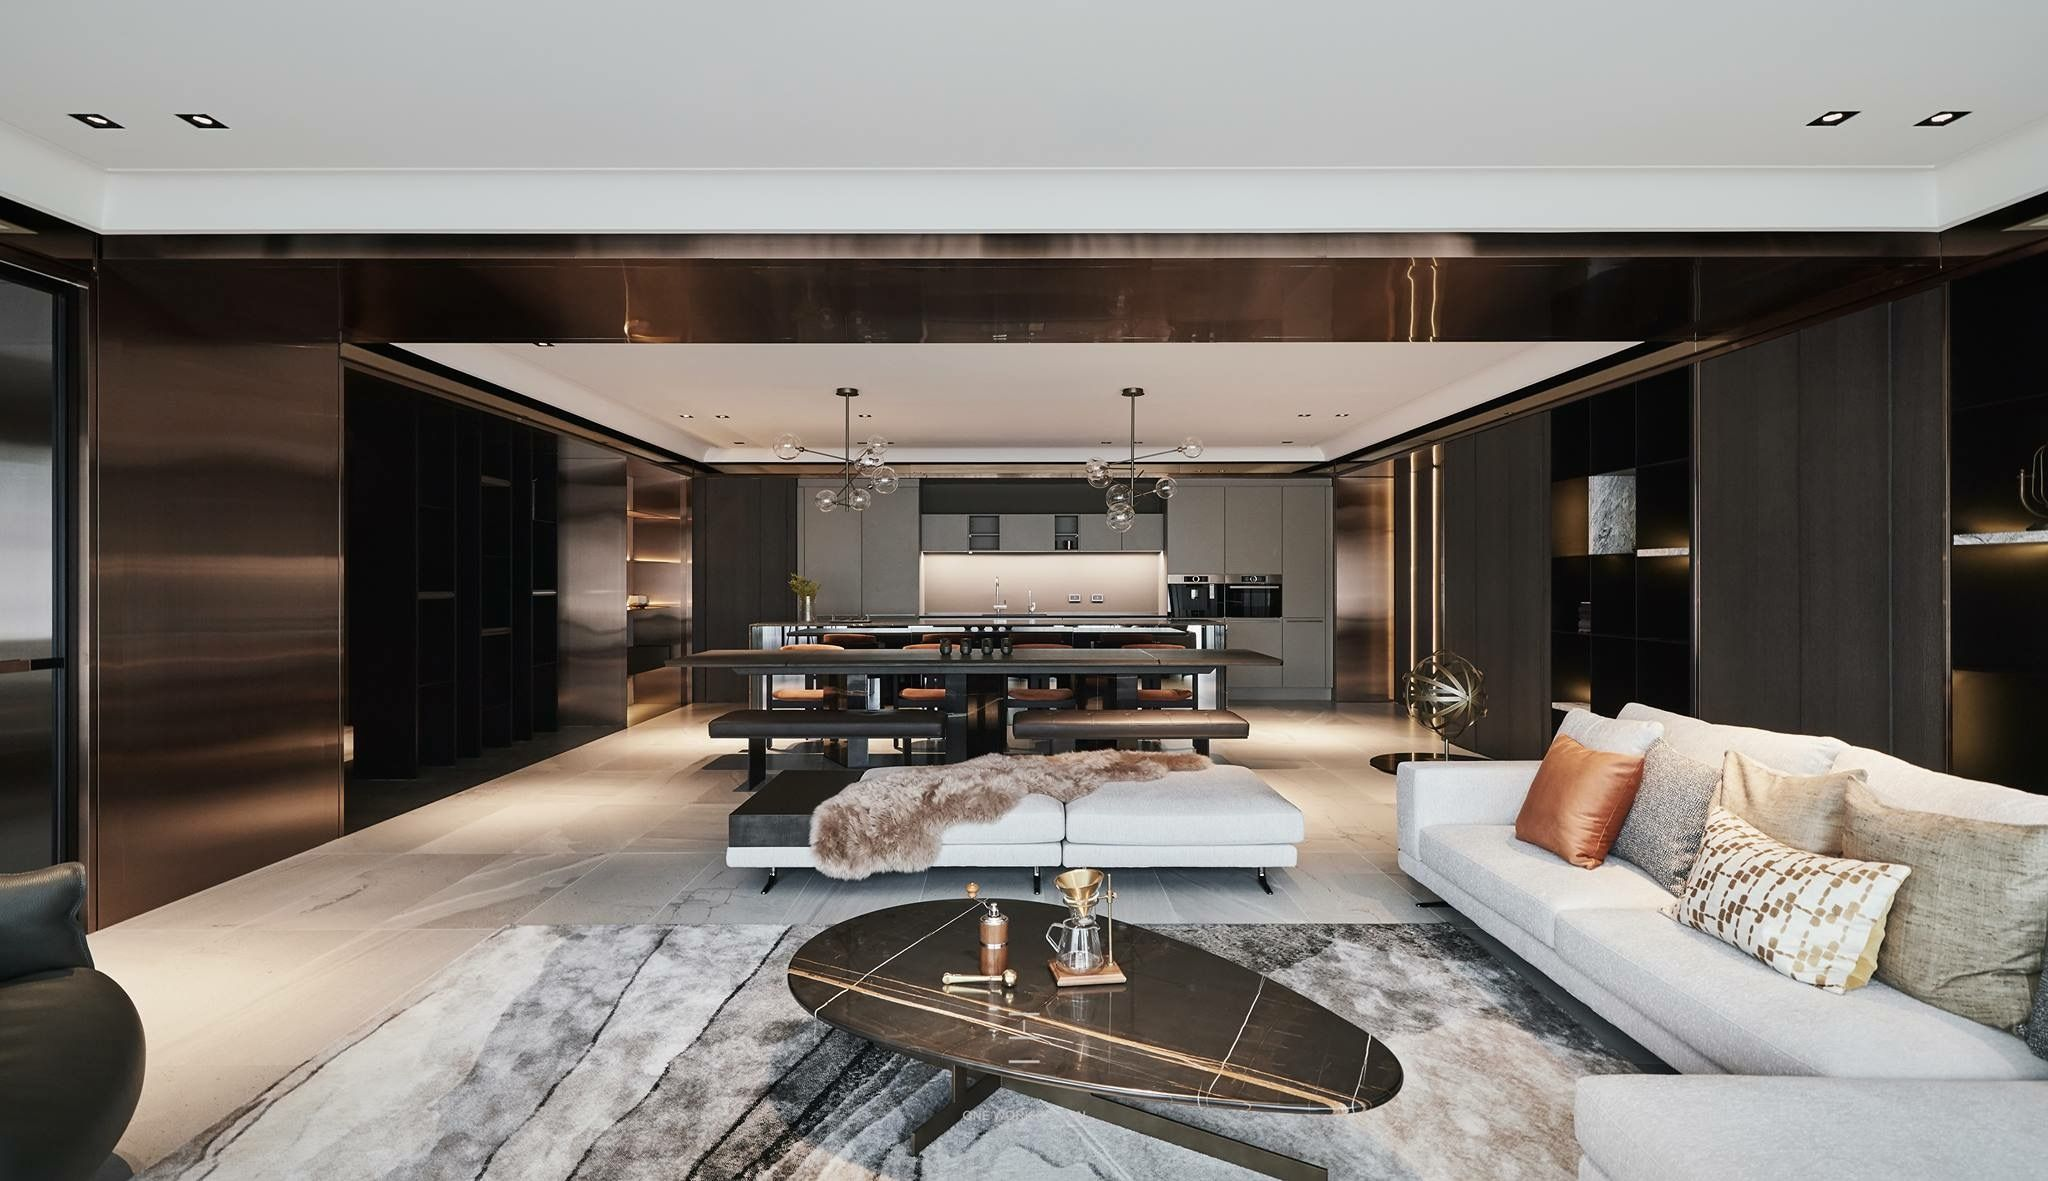 Pin by samson stone on extensions pinterest living rooms villas